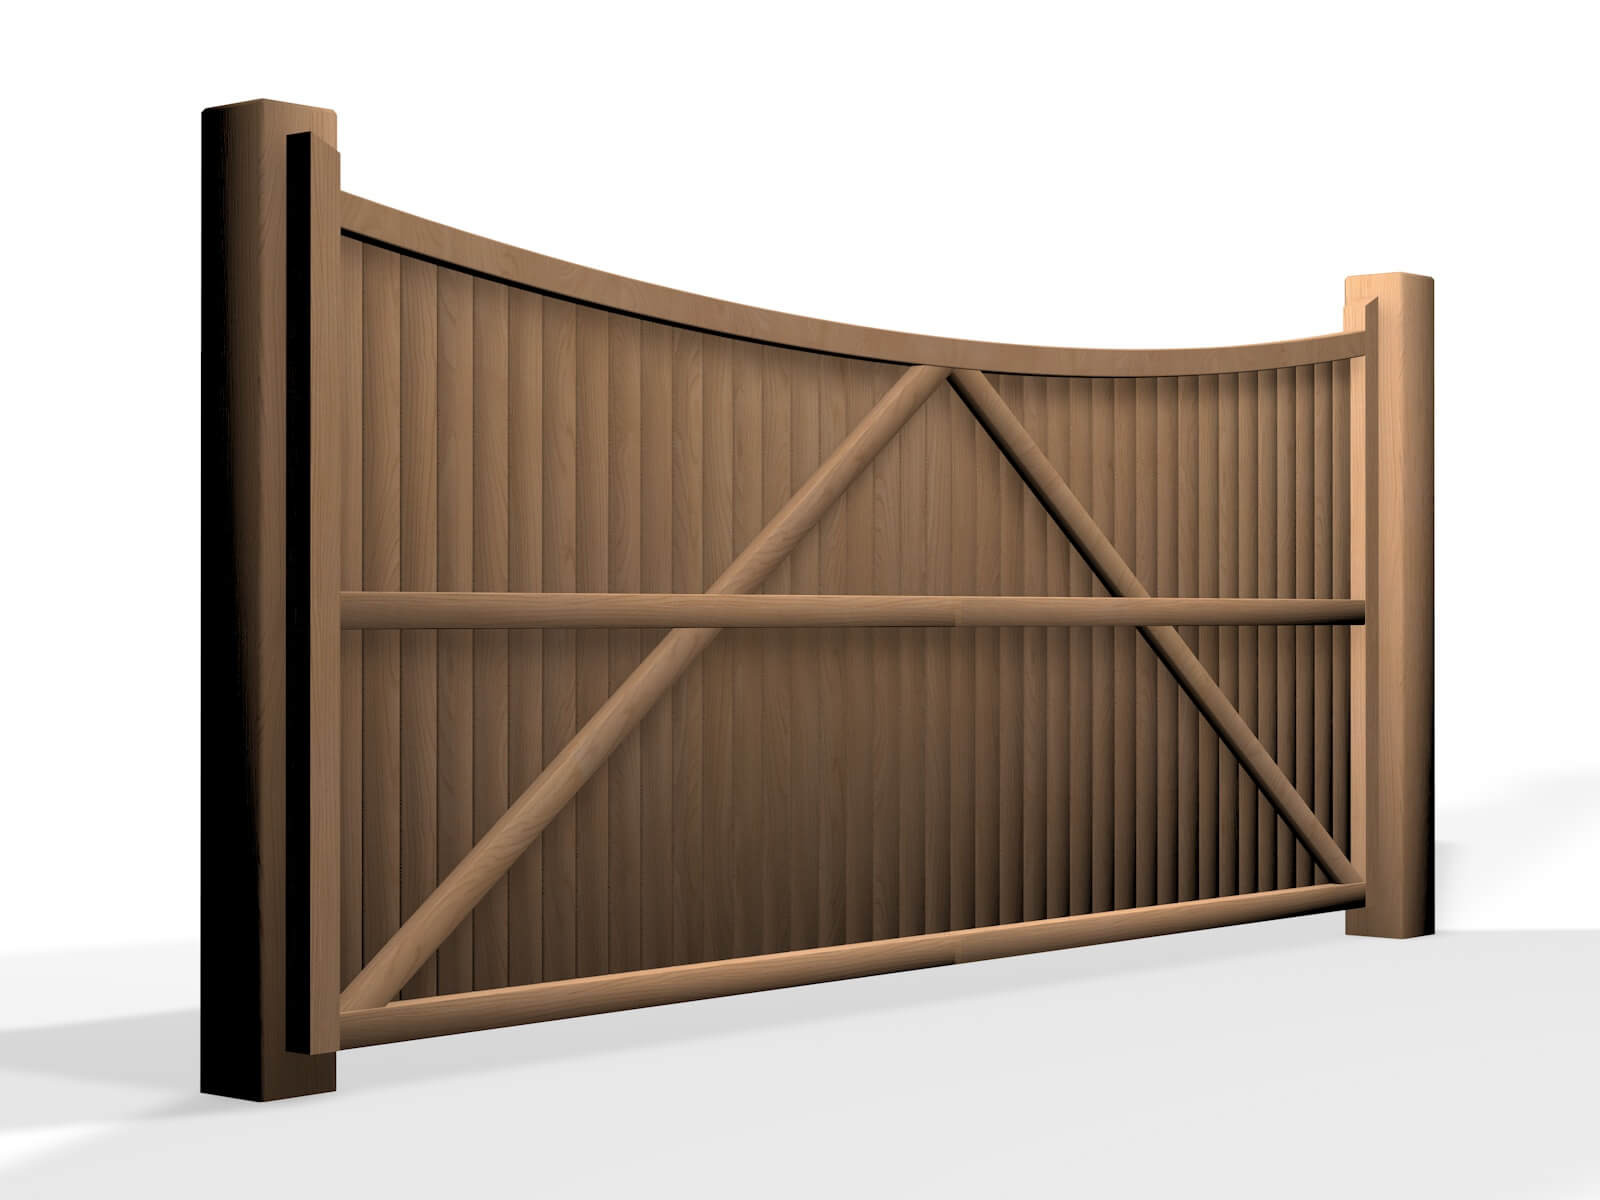 wooden bow top sliding automated gate in bristol UK